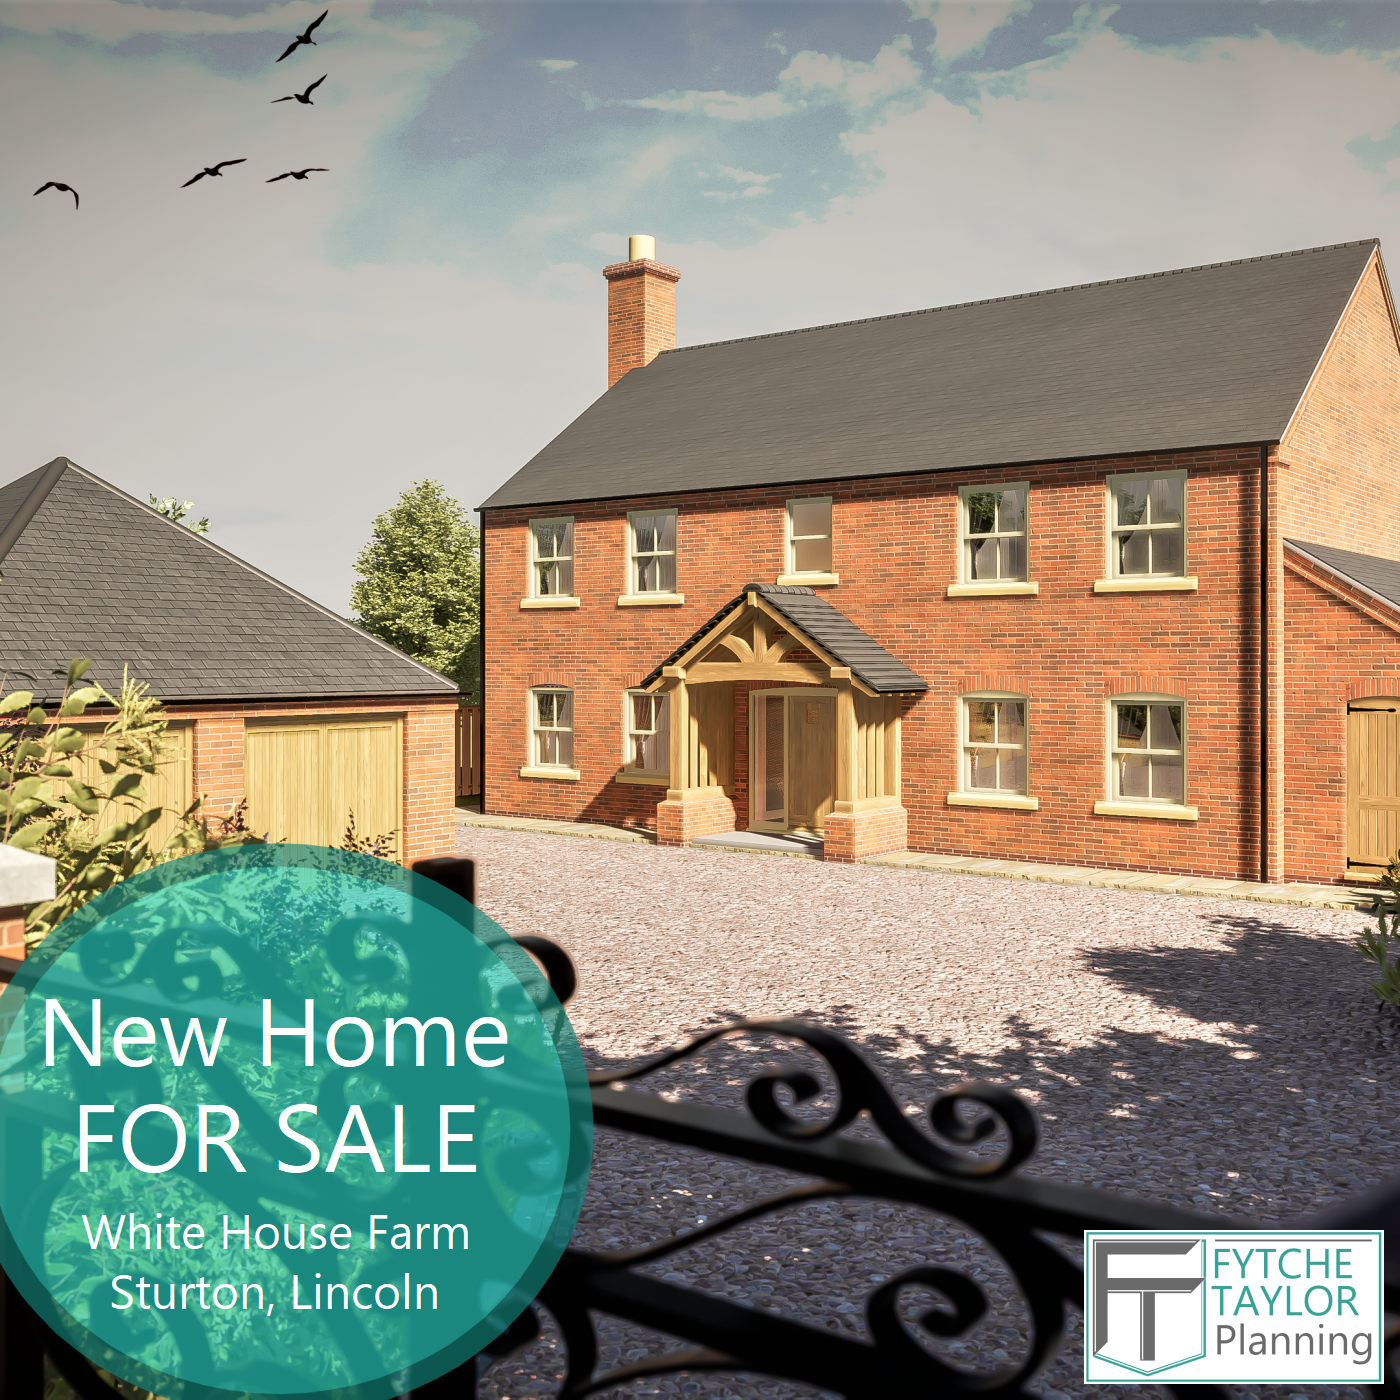 New build home for sale - a stunning bespoke character property in a unique rural location